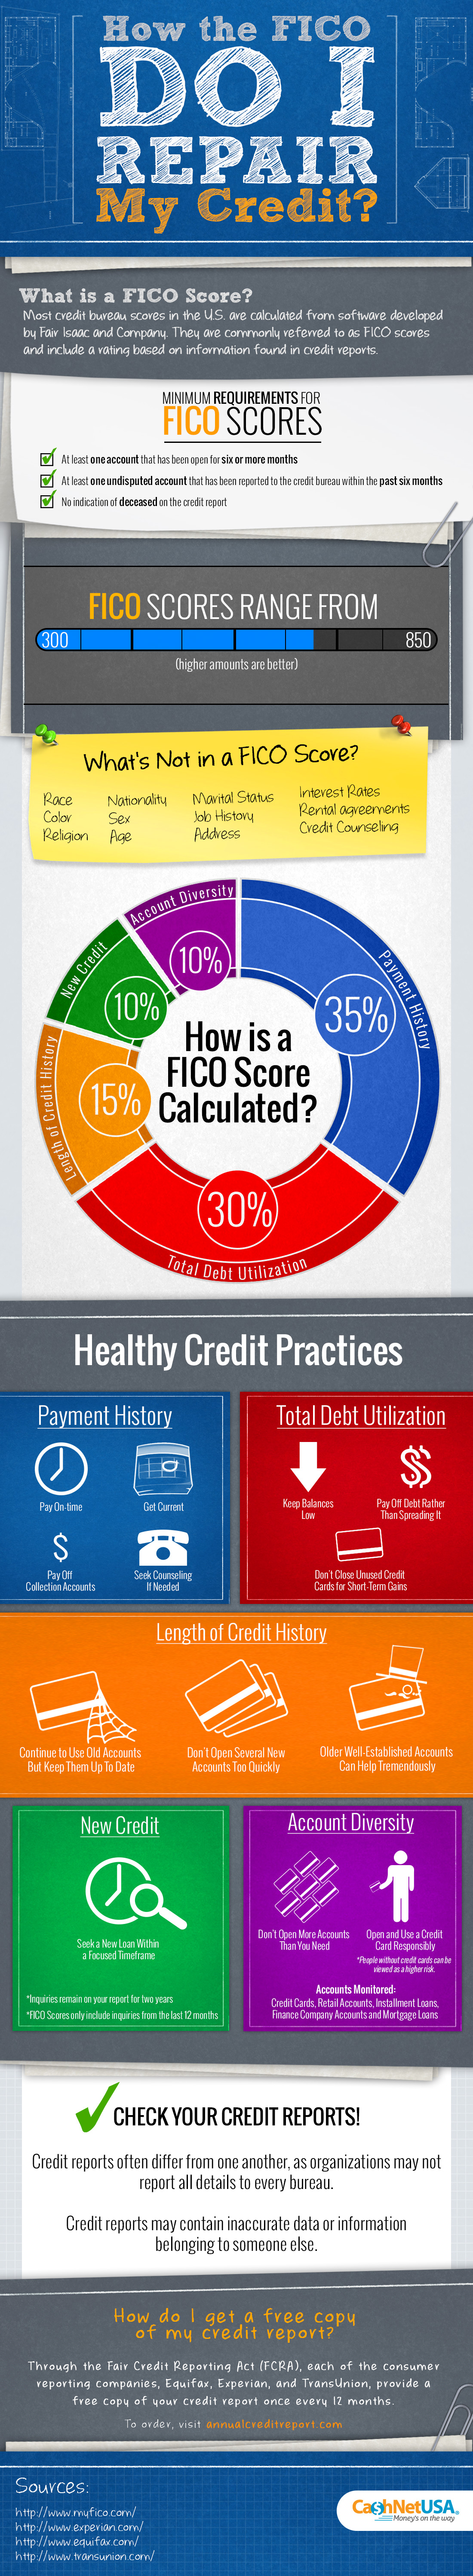 How the FICO Do I Repair My Credit? Brought to you by cashnetusa.com